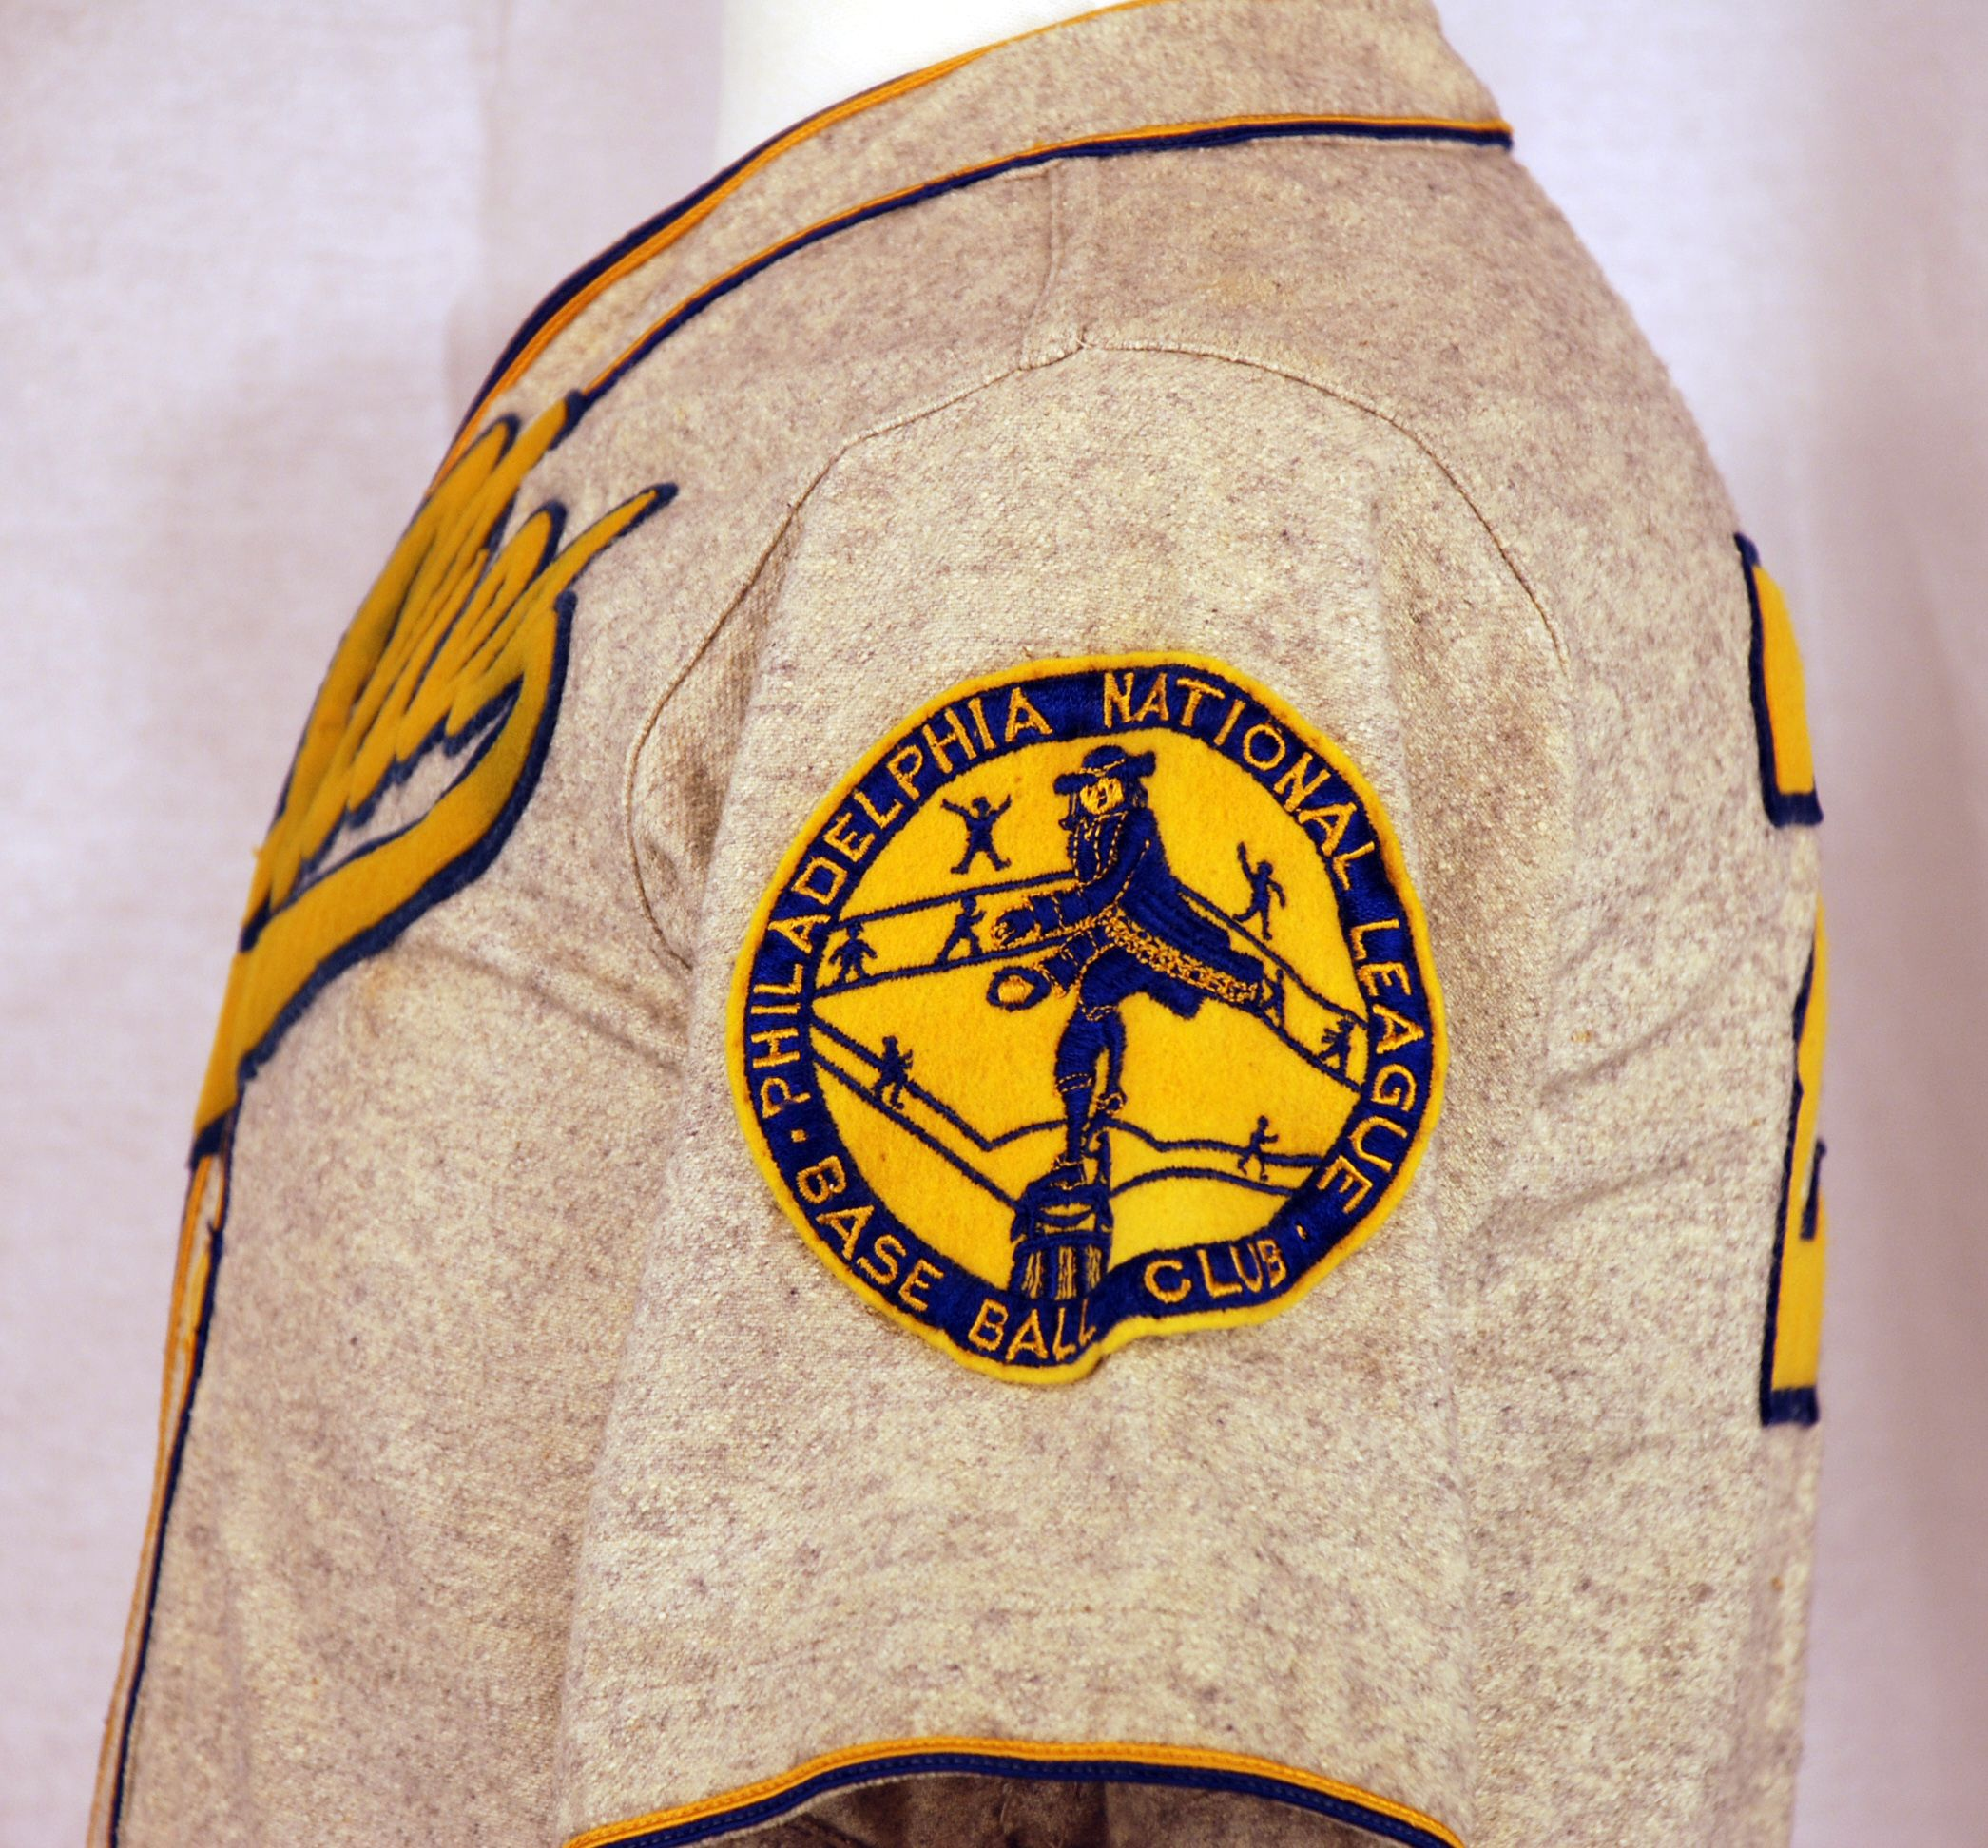 82nd sustainment brigade class a patch